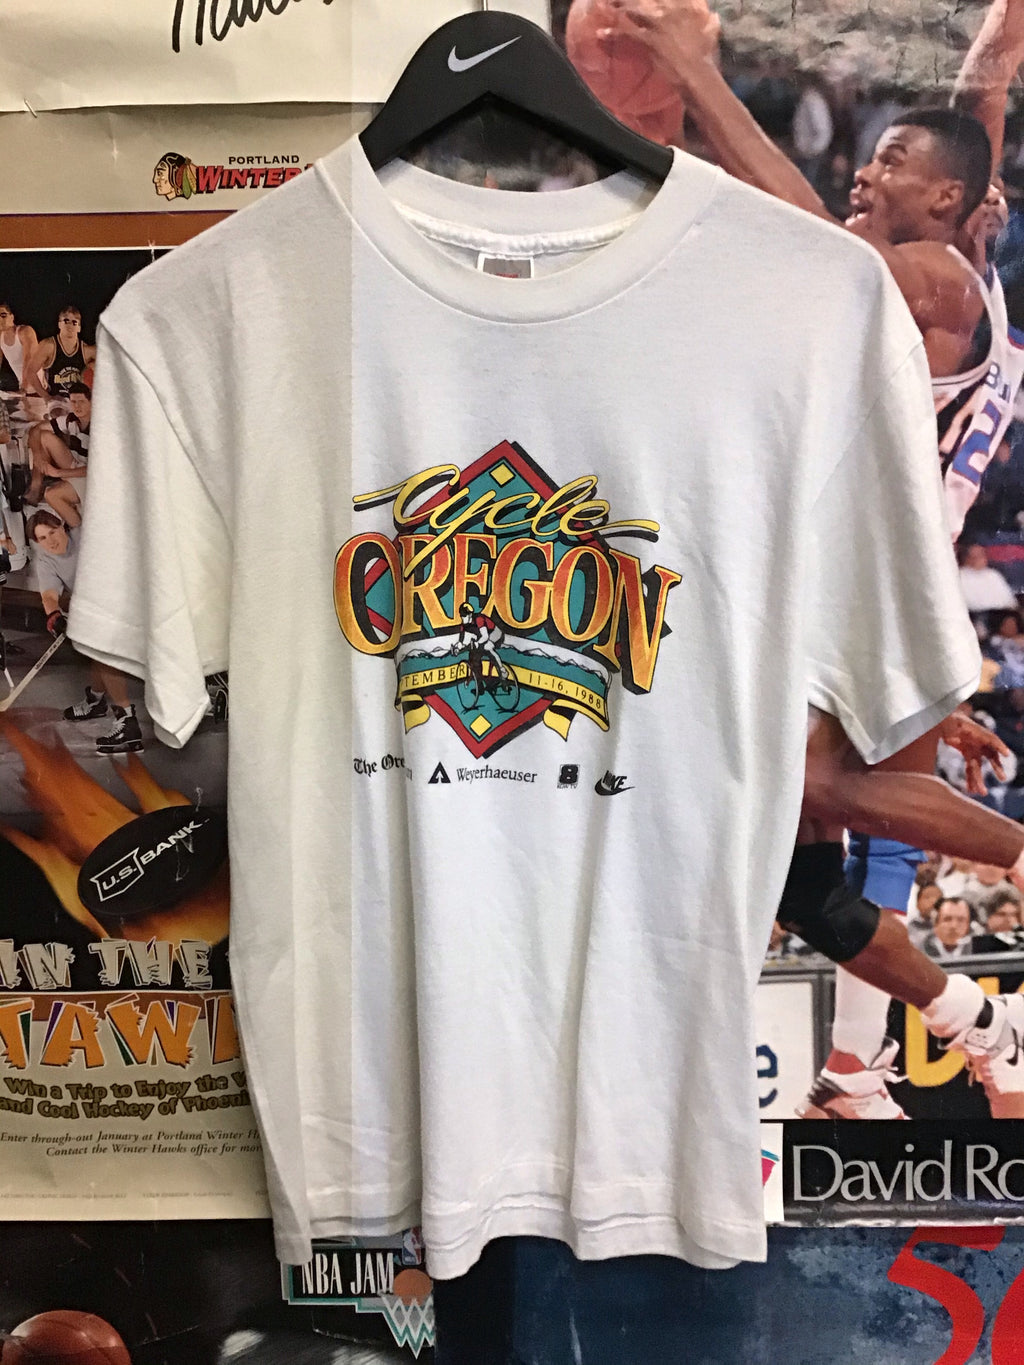 Nike Cycle Oregon Tee Large - Decades of dope